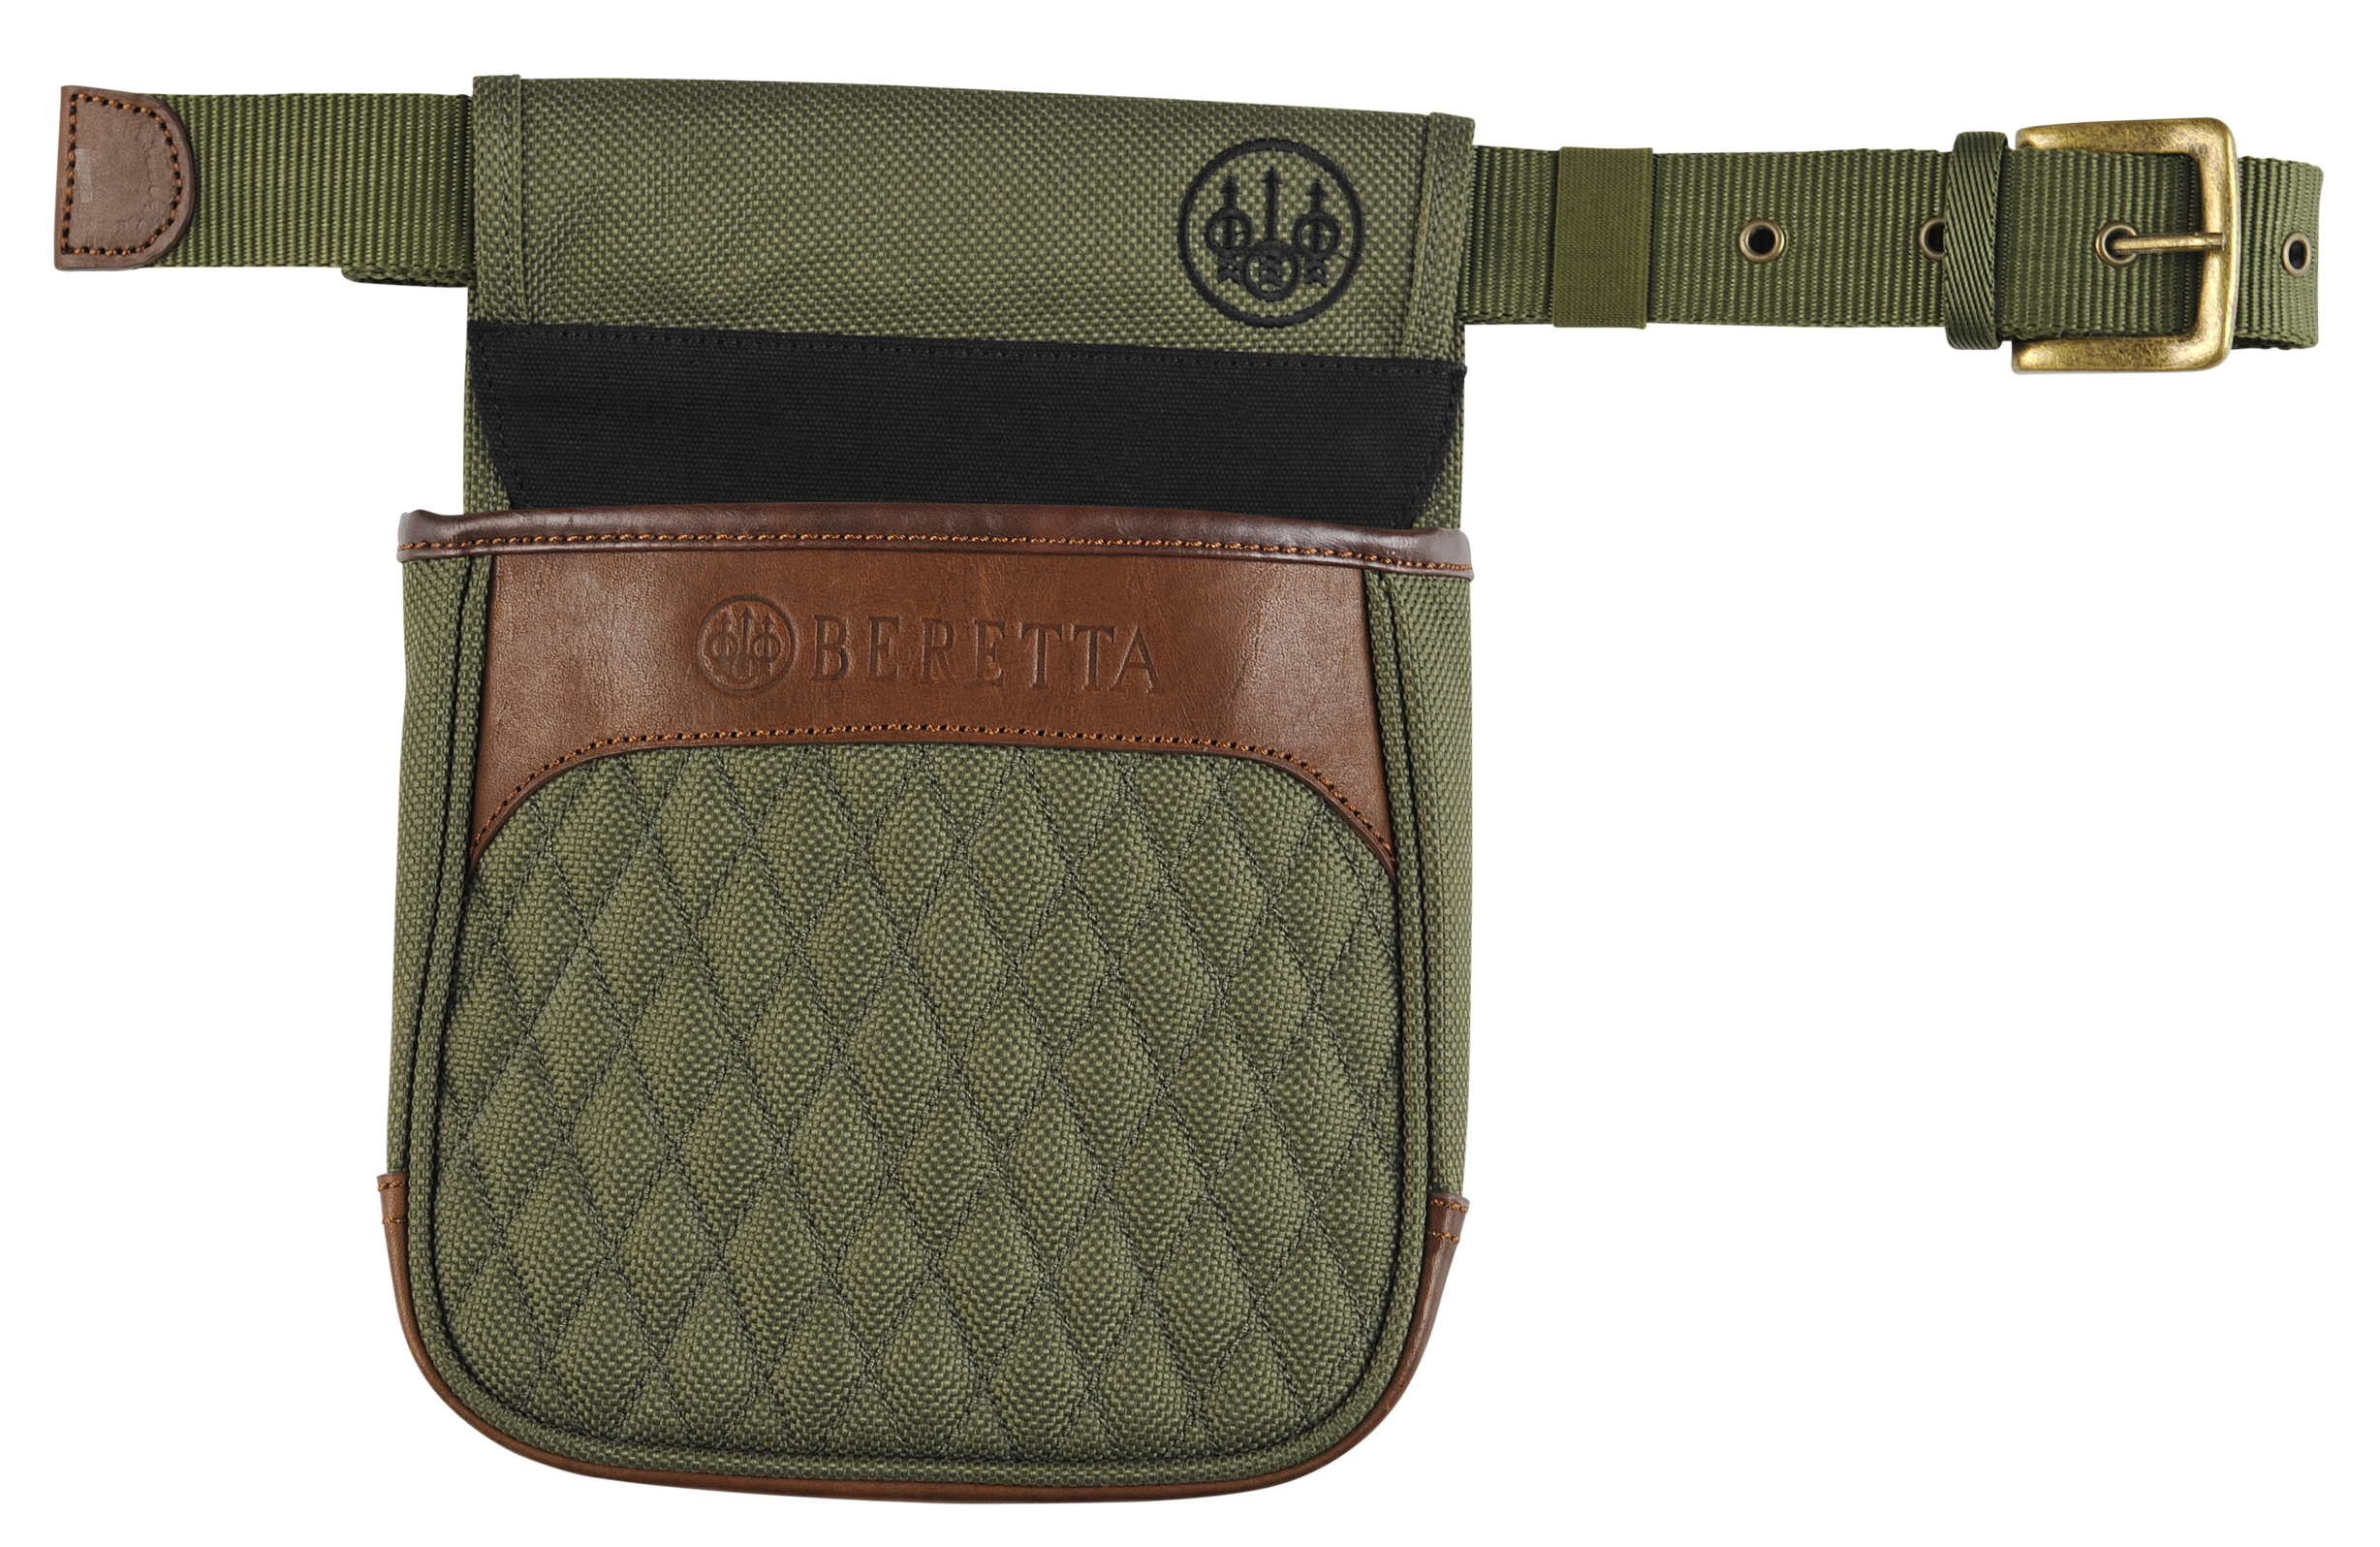 Beretta B1 Signature Shell Pouch - Canvas/Leather - Green